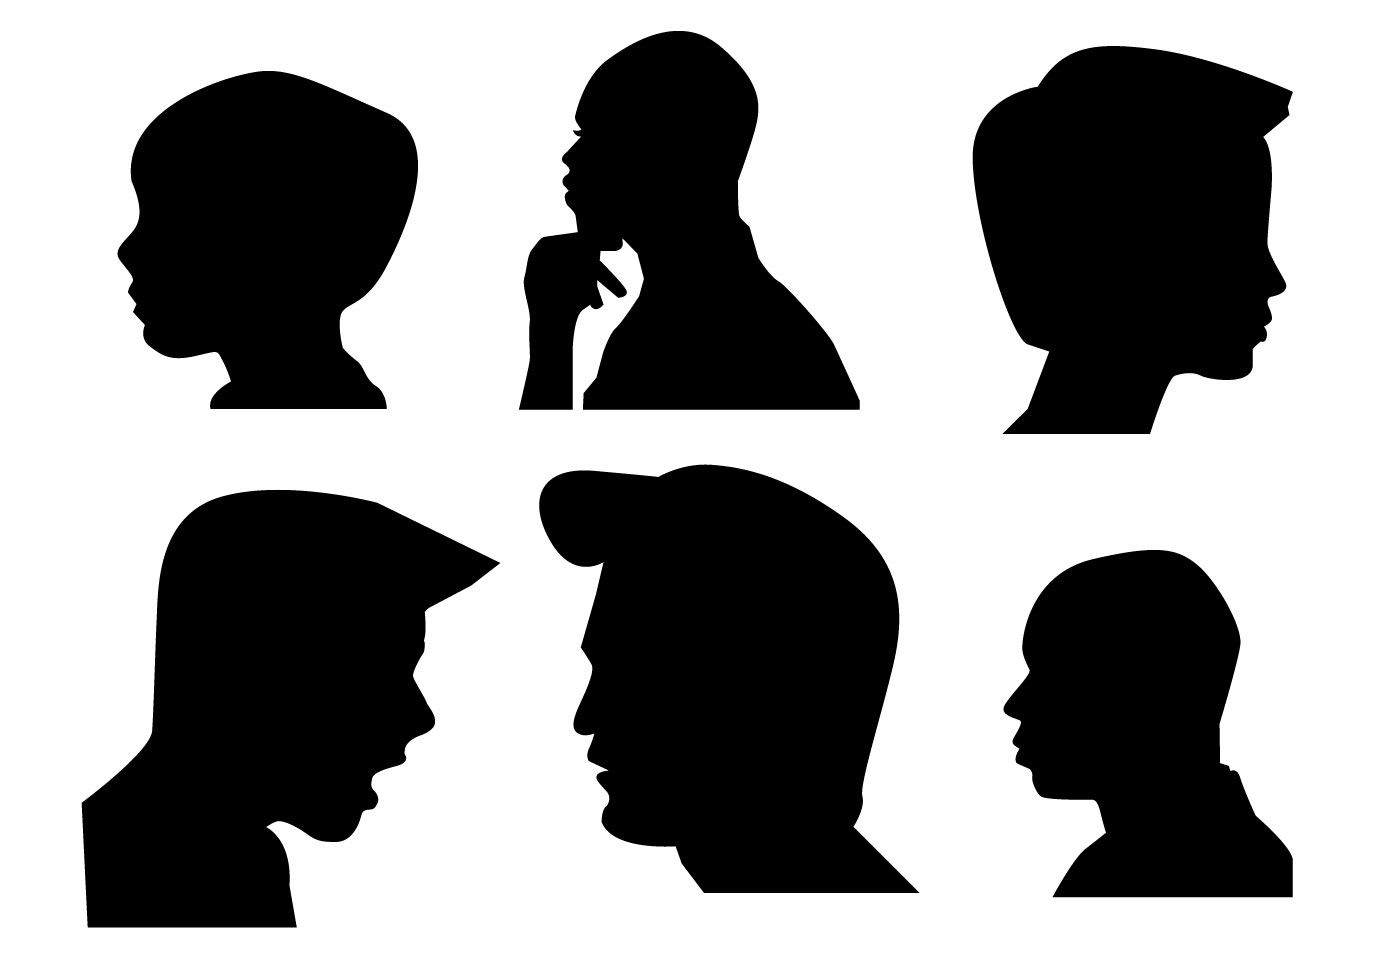 1400x980 Vector Boys Side Face Silhouette.jpg Illustrazione